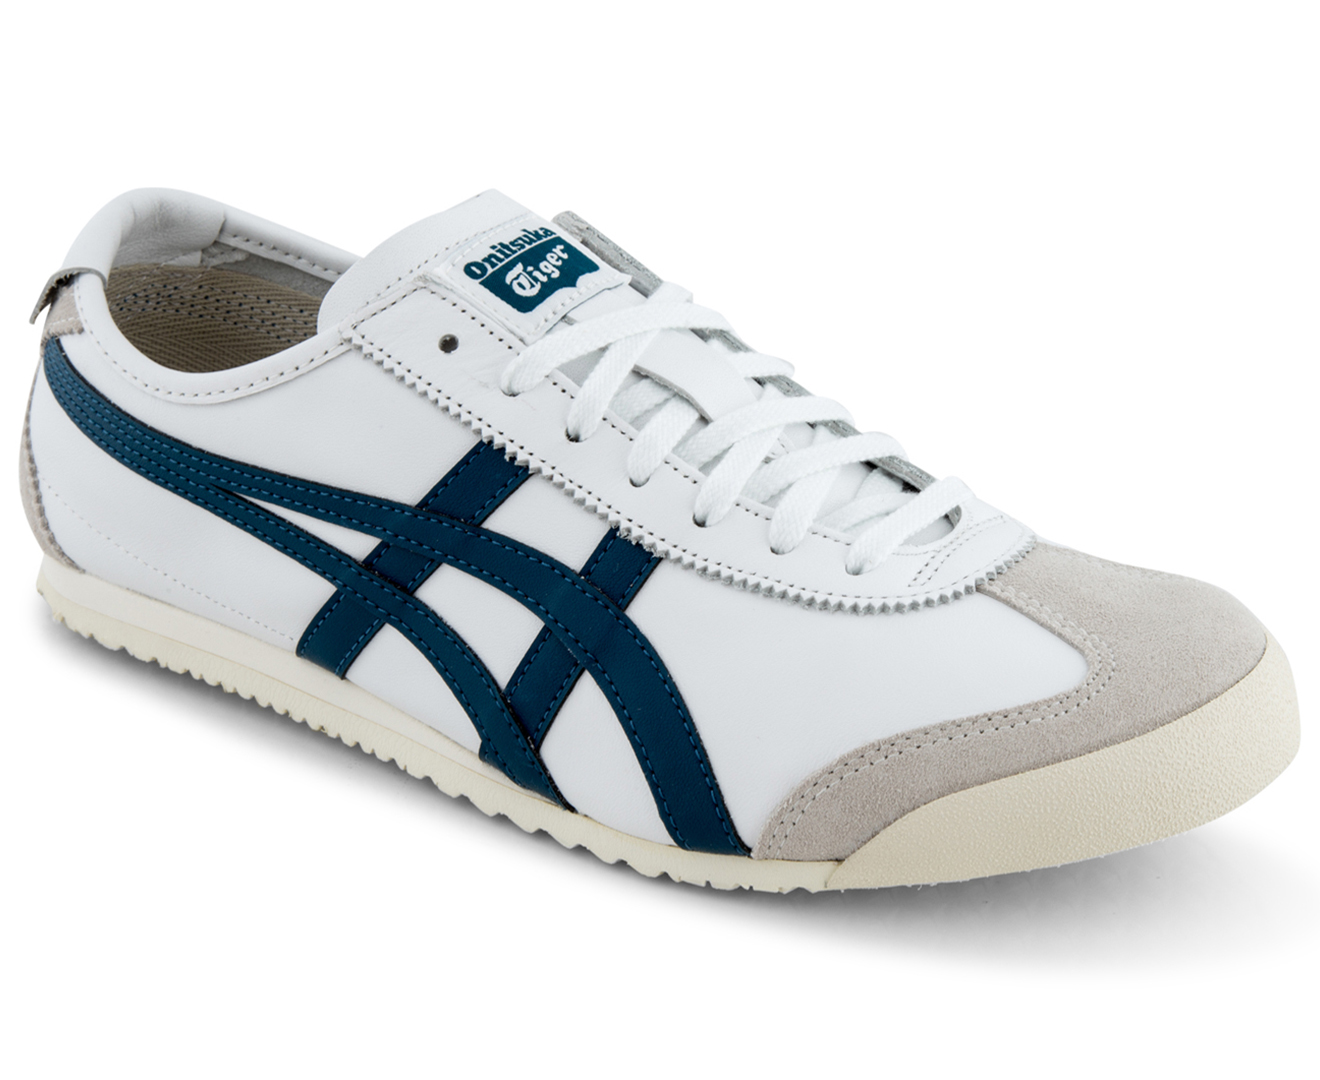 Tiger 66 Onitsuka Mexico Blue Men's Whiteink Shoe HD29YWEeI